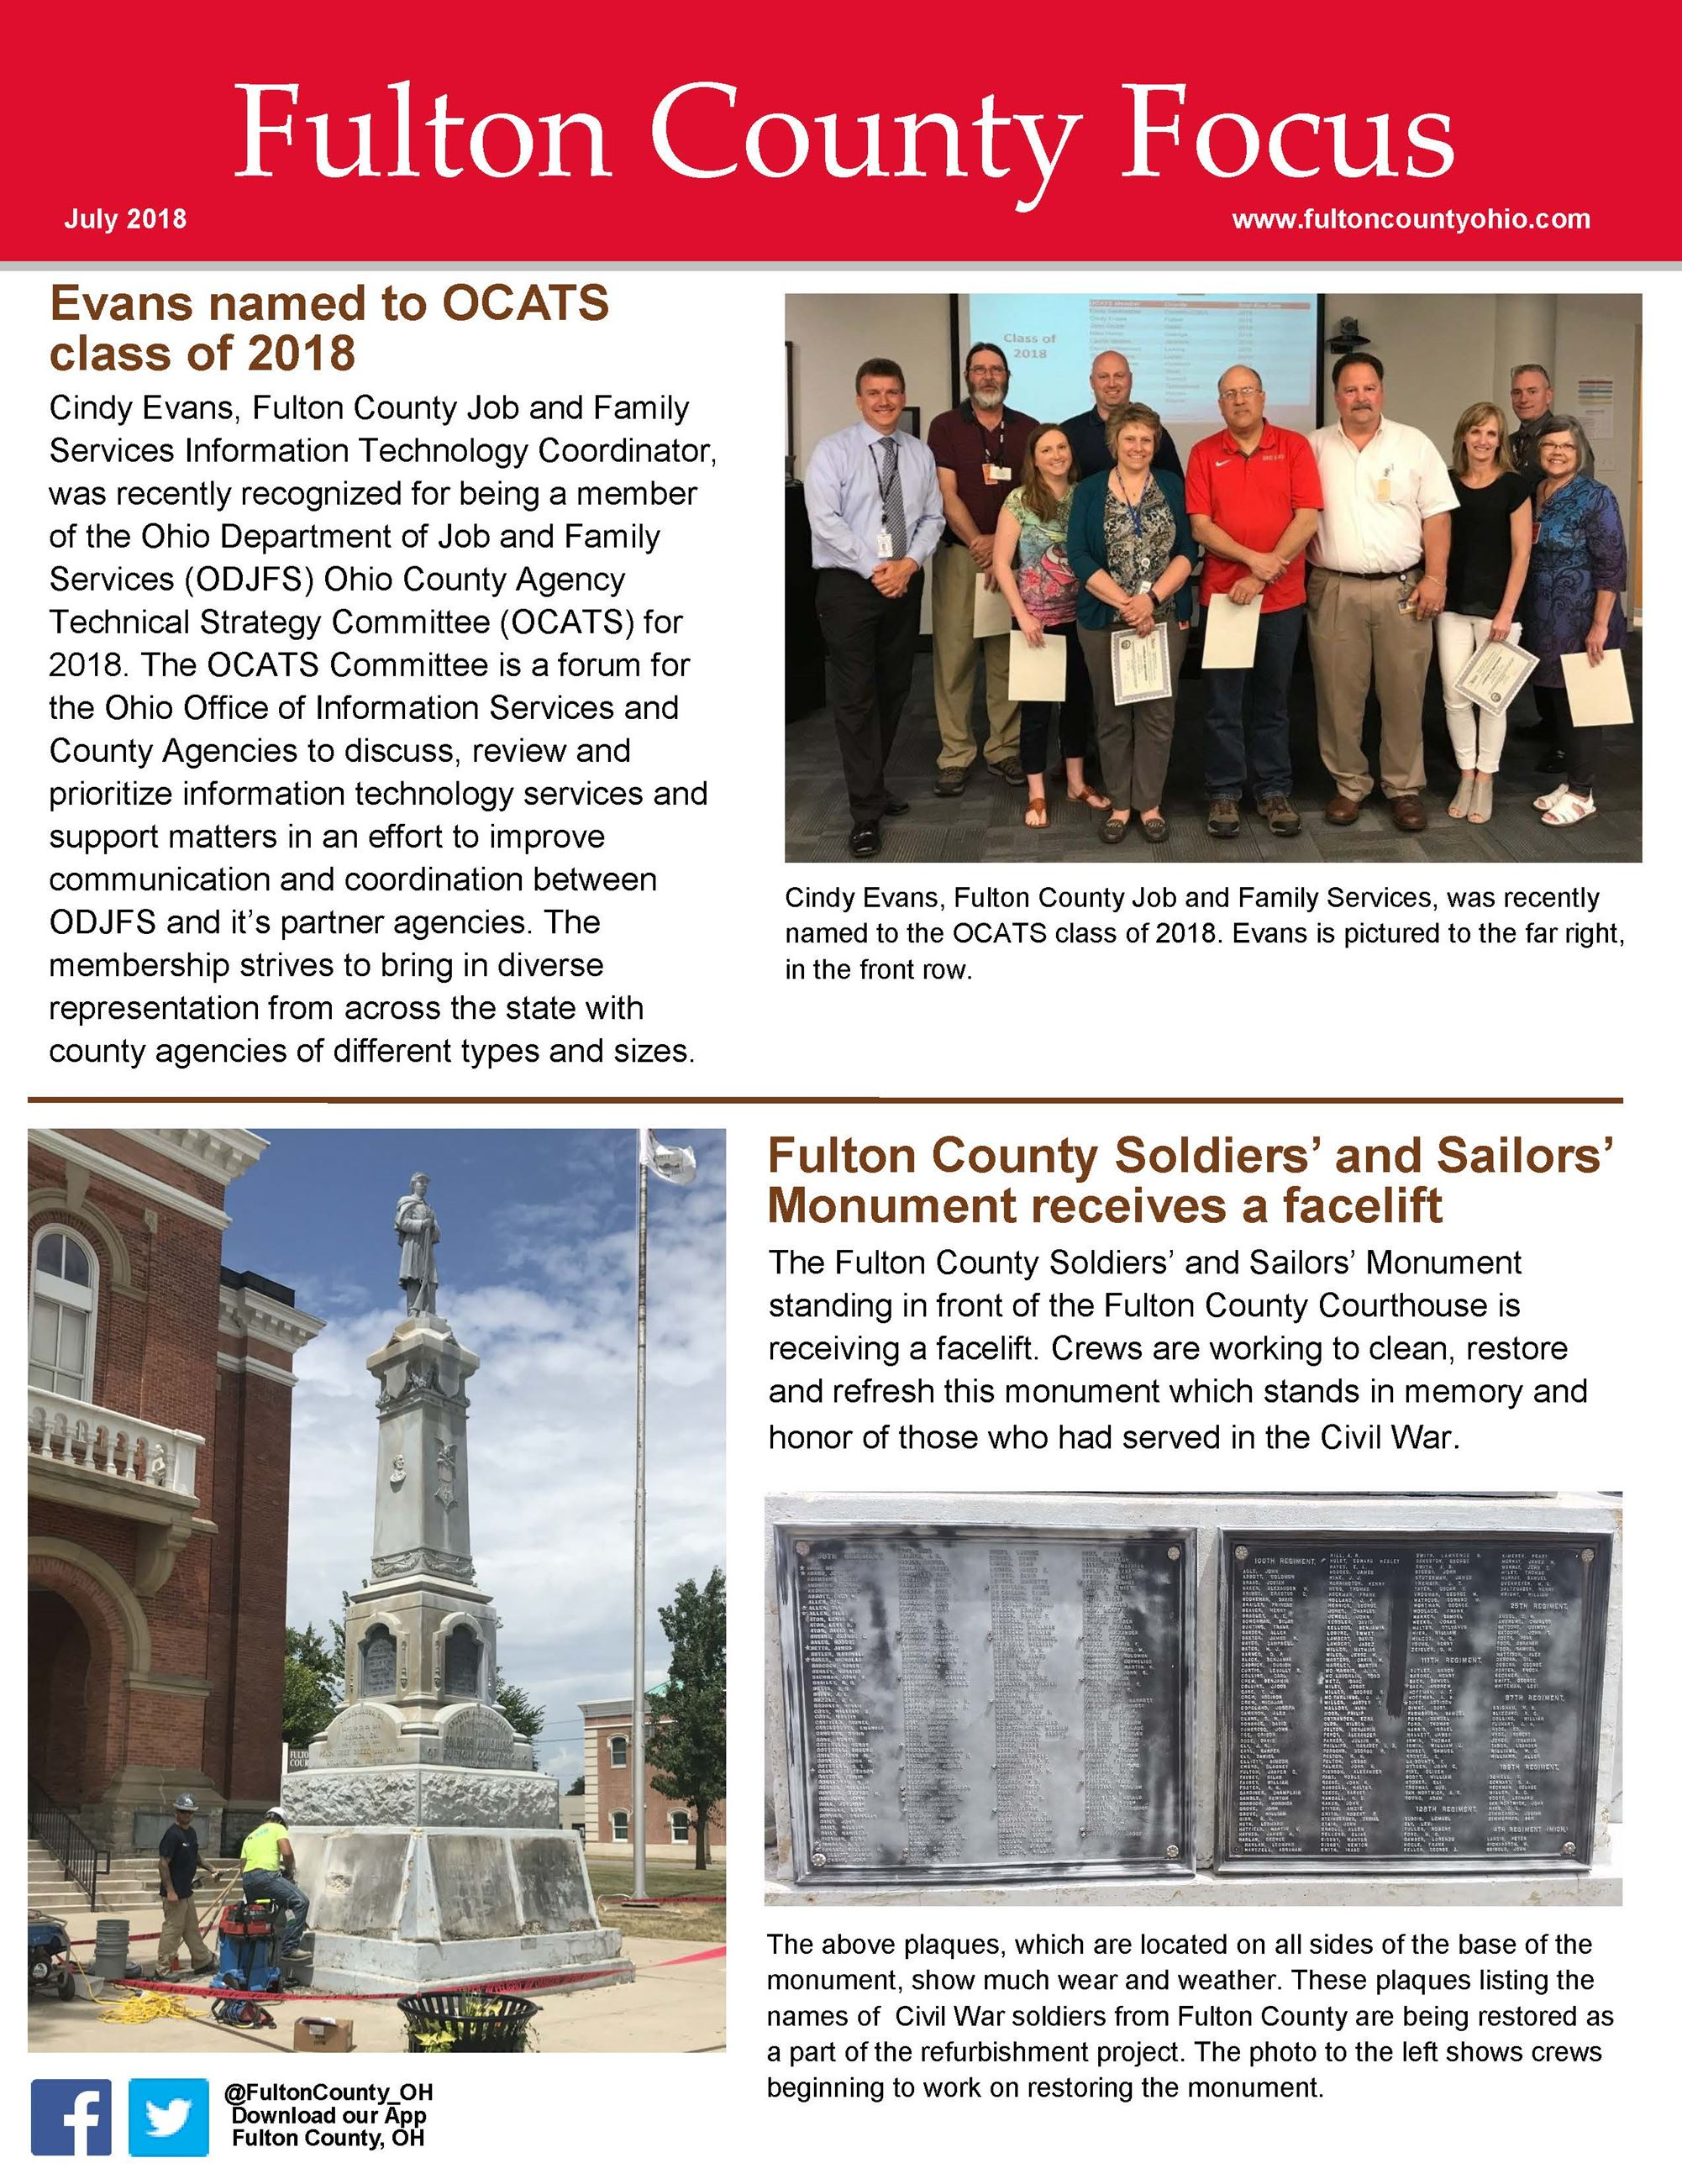 Fulton County Focus July 2018